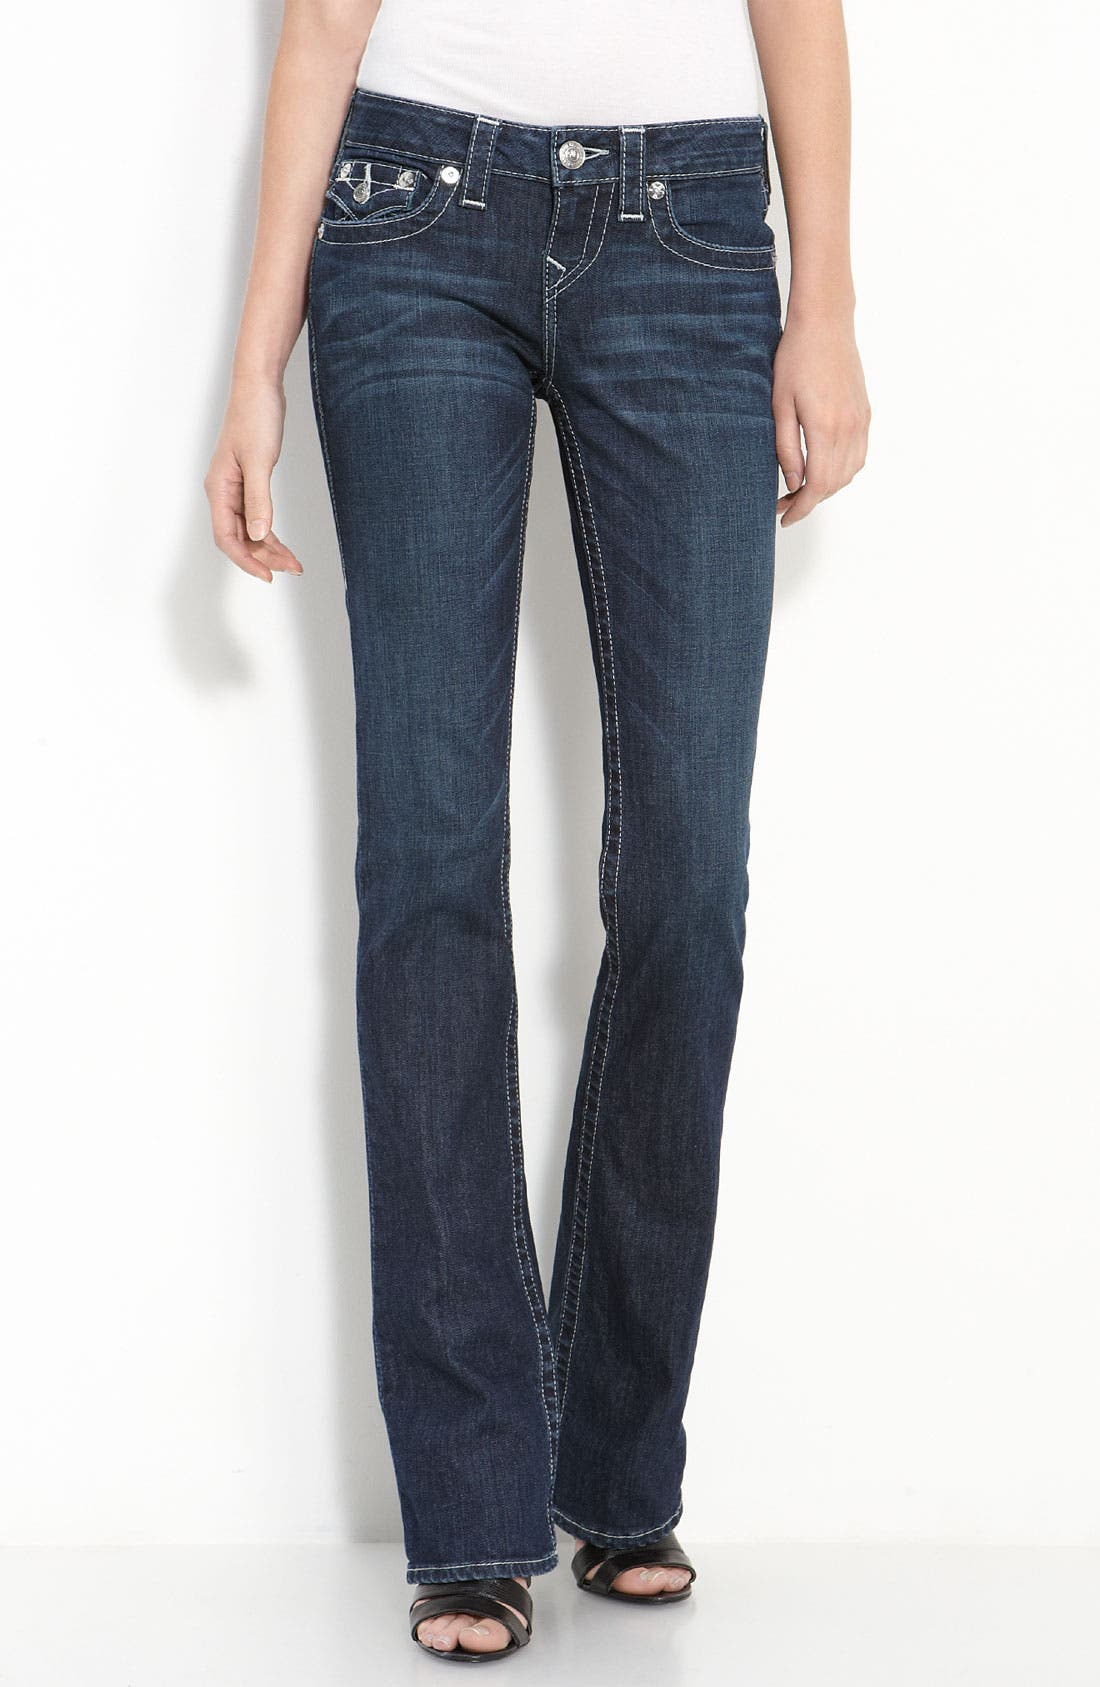 Alternate Image 1 Selected - True Religion Brand Jeans 'Becky' Bootcut Jeans (Houston)(Online Only)